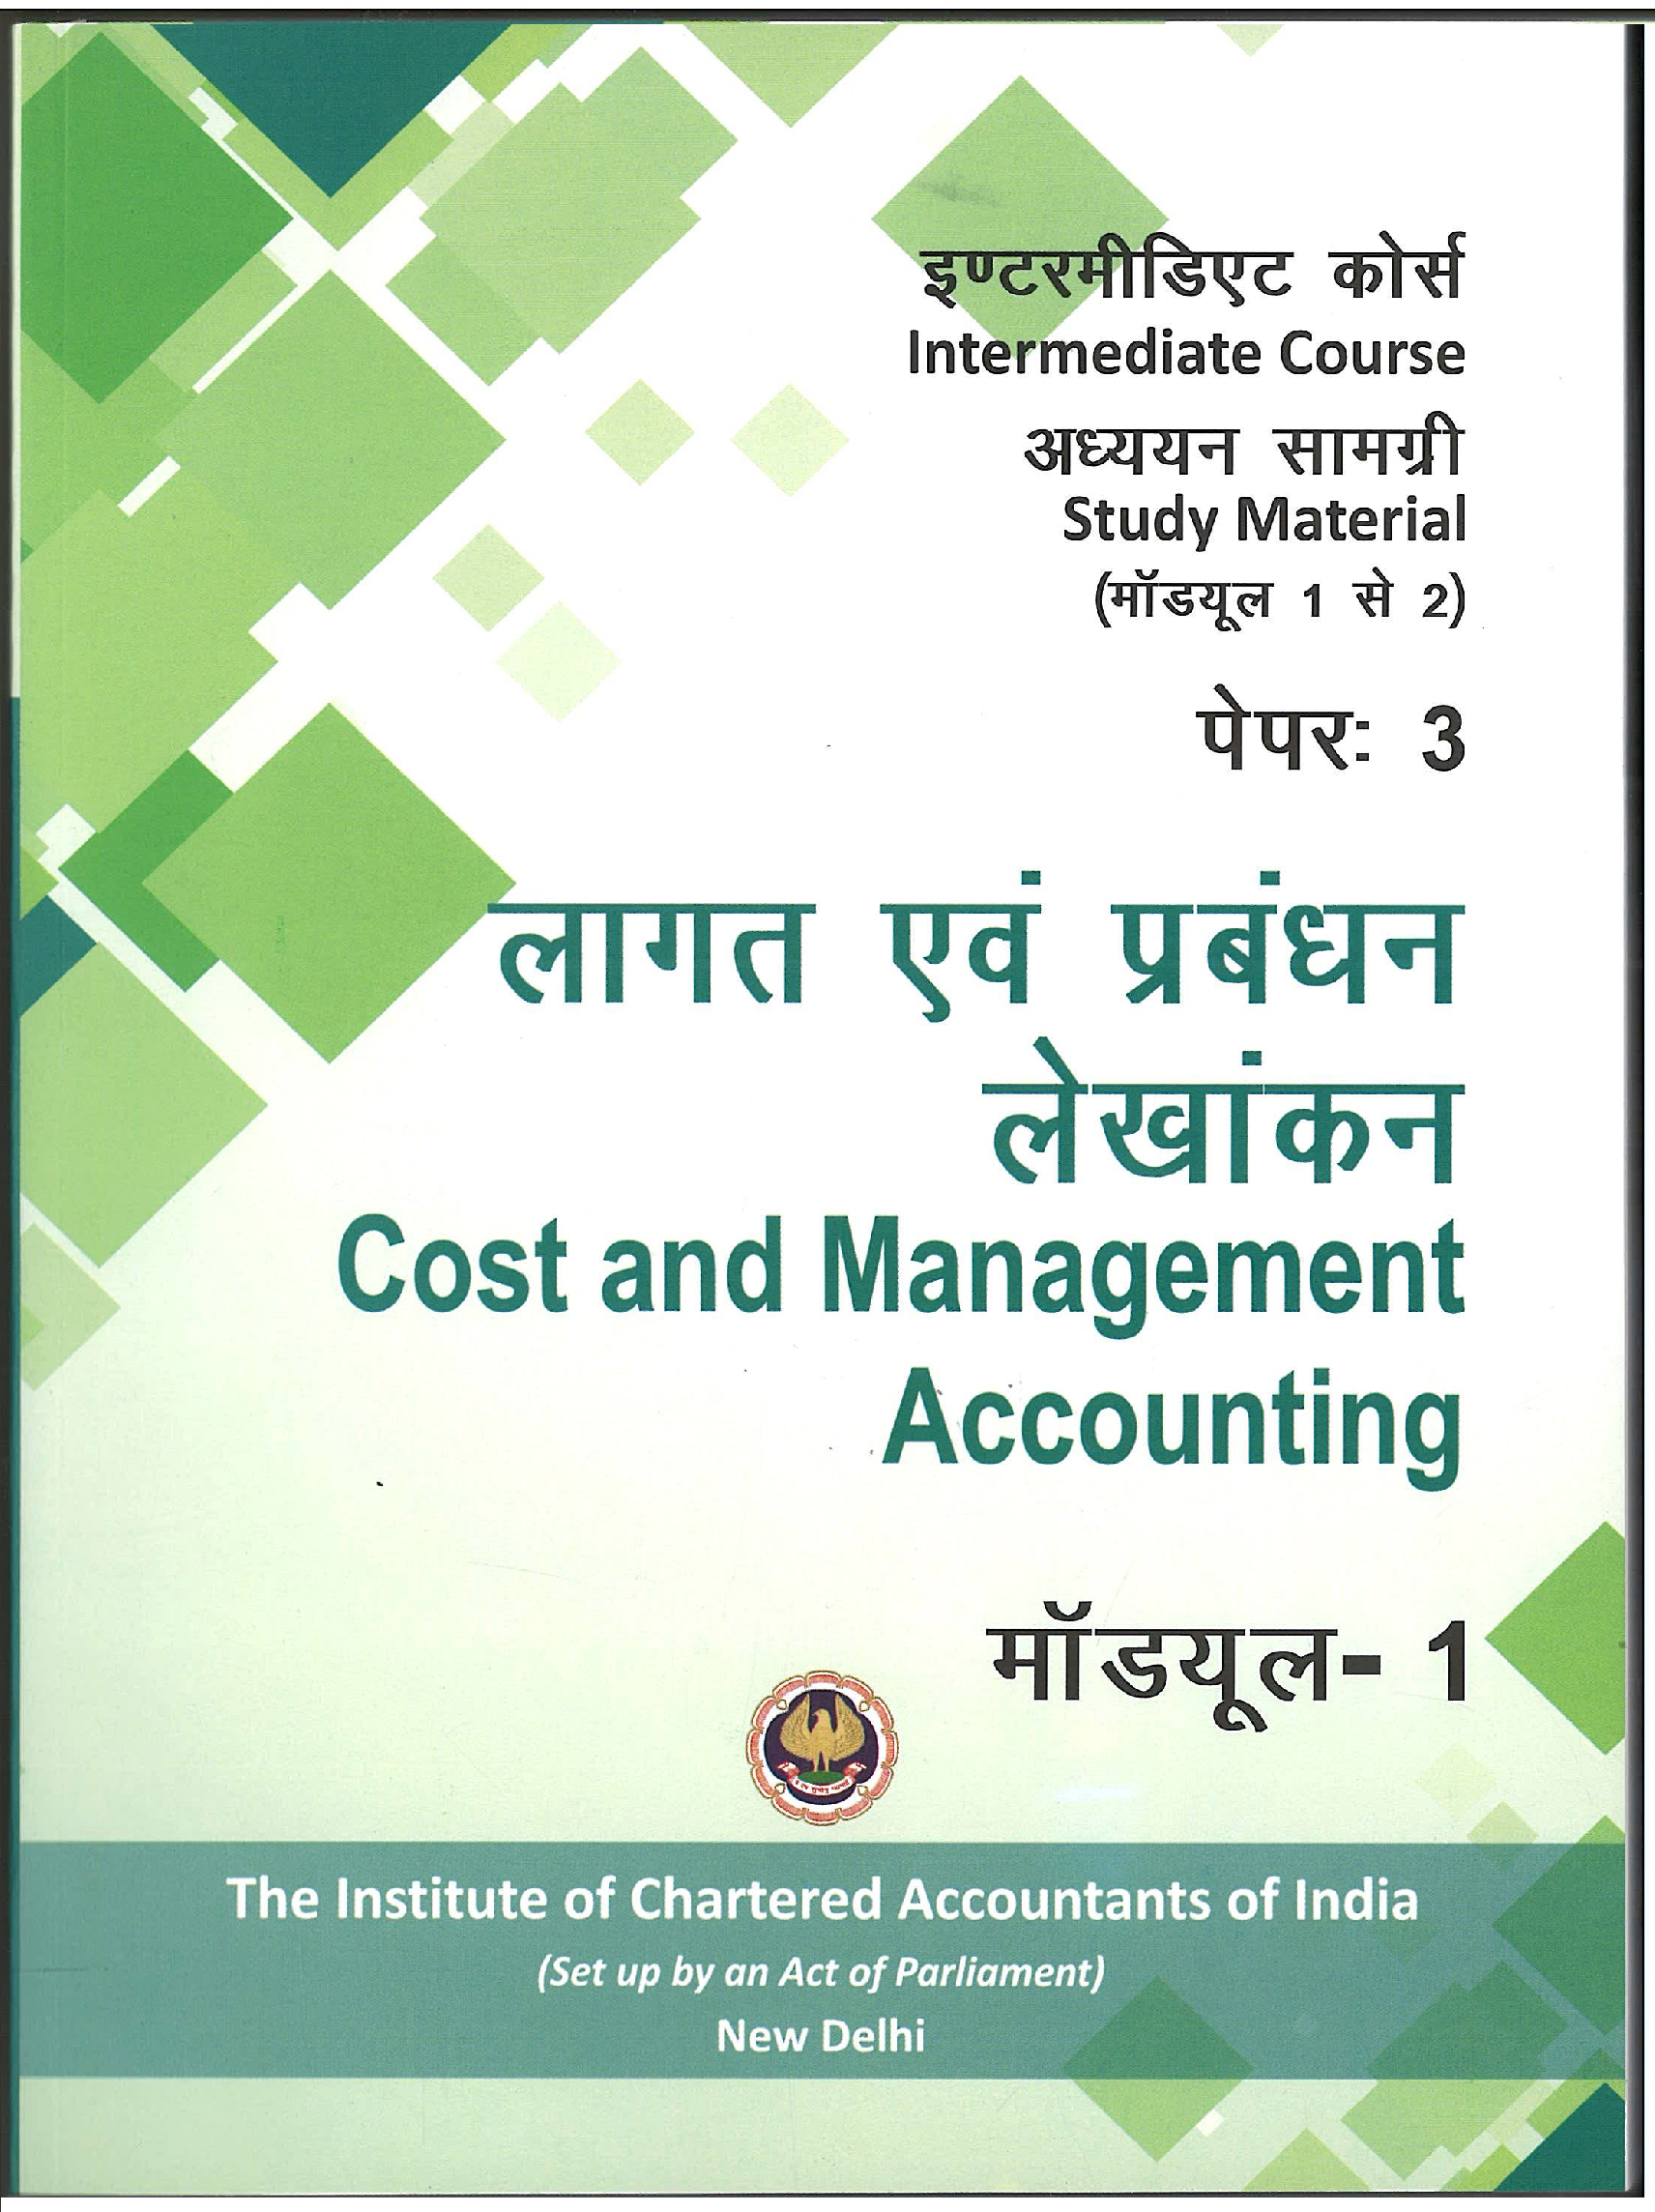 Intermediate Course (Hindi) Study Material  Cost and Management Accounting (Module 1-2) (July, 2017)